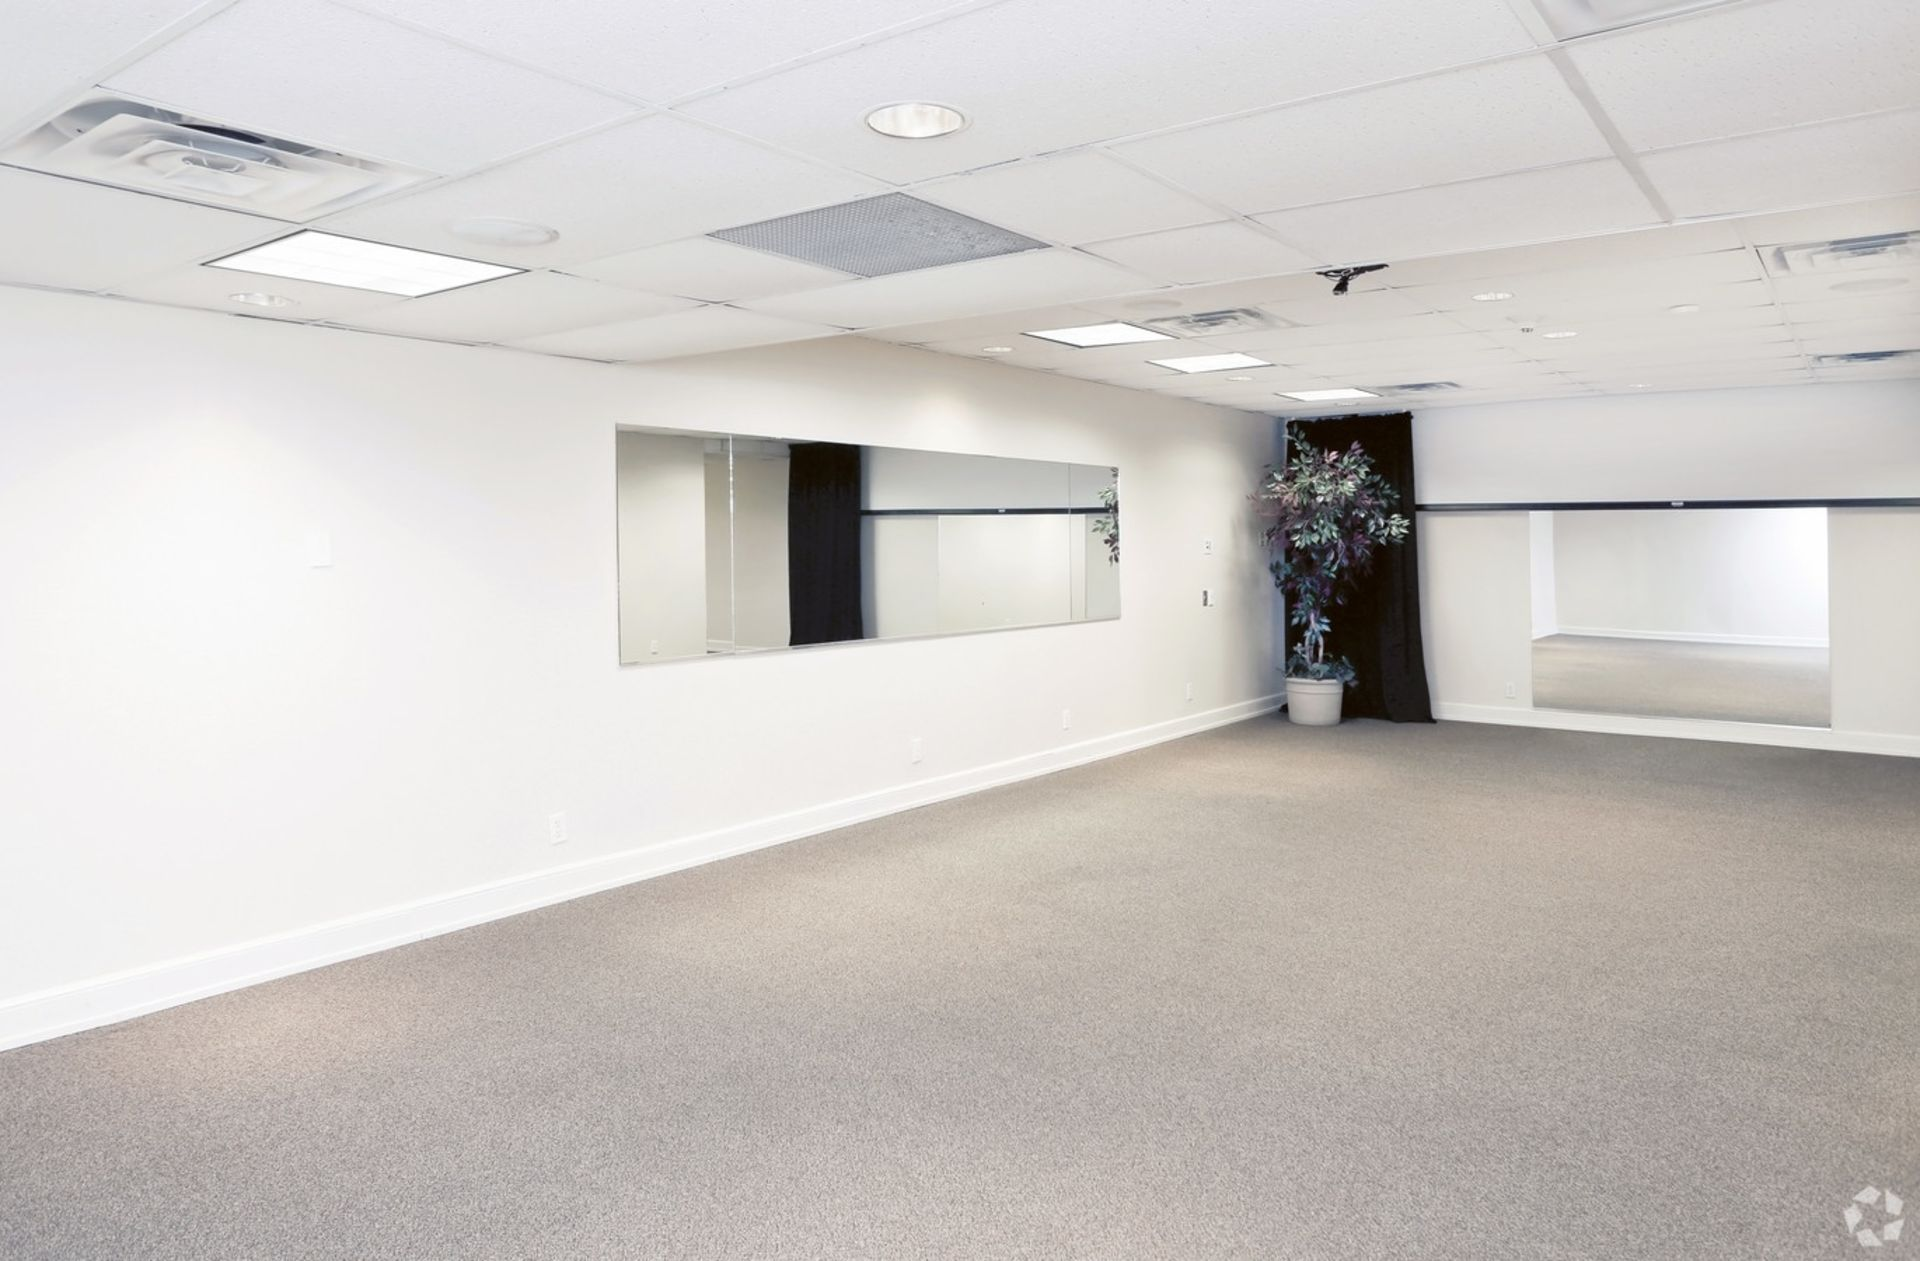 Lot 4 - Medical Office Suite in Dallas - Suite 200